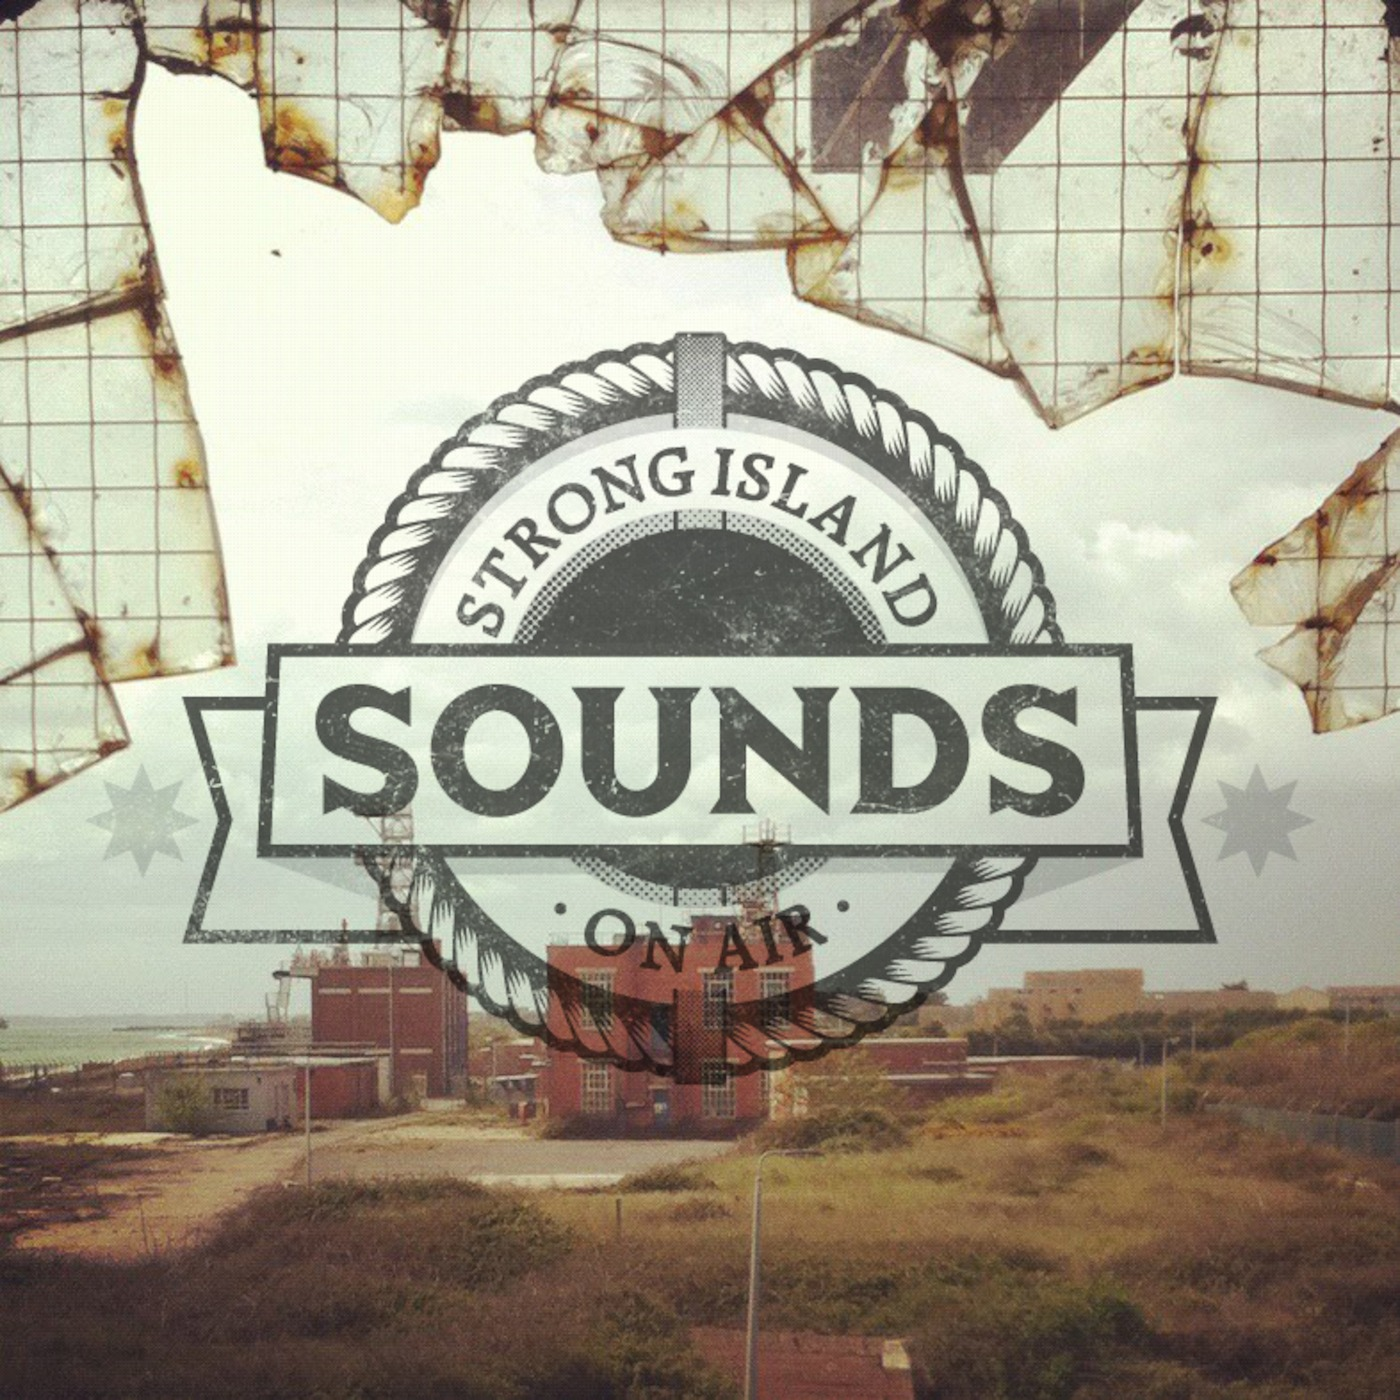 Strong Island Sounds